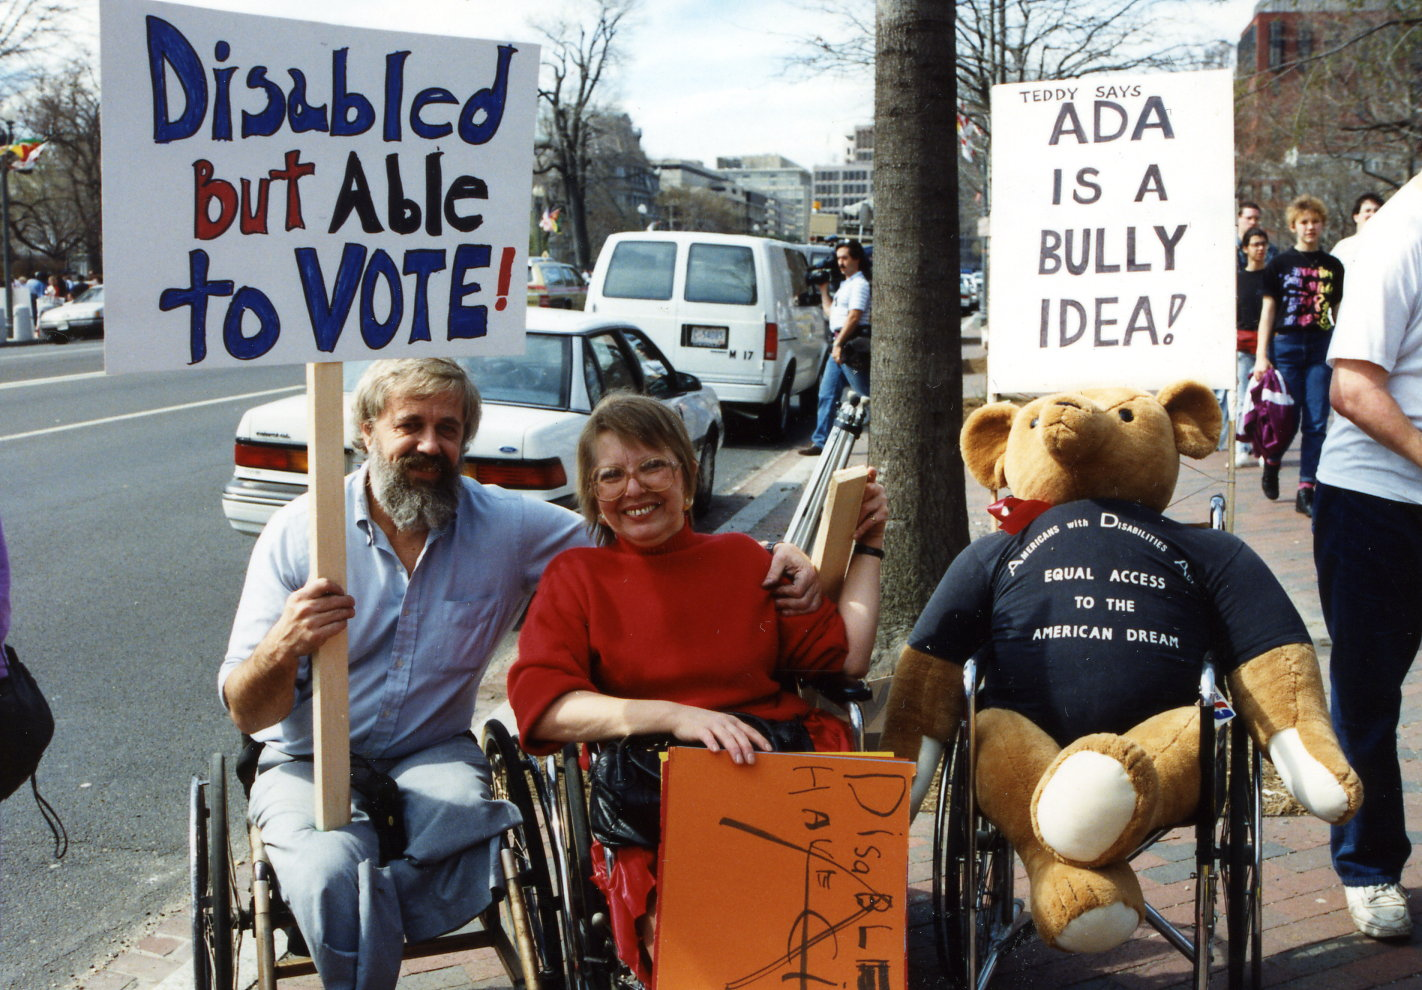 Sharon and her partner, Phil Calkins, and a teddy bear in a wheelchair waiting before marching to the US Capitol